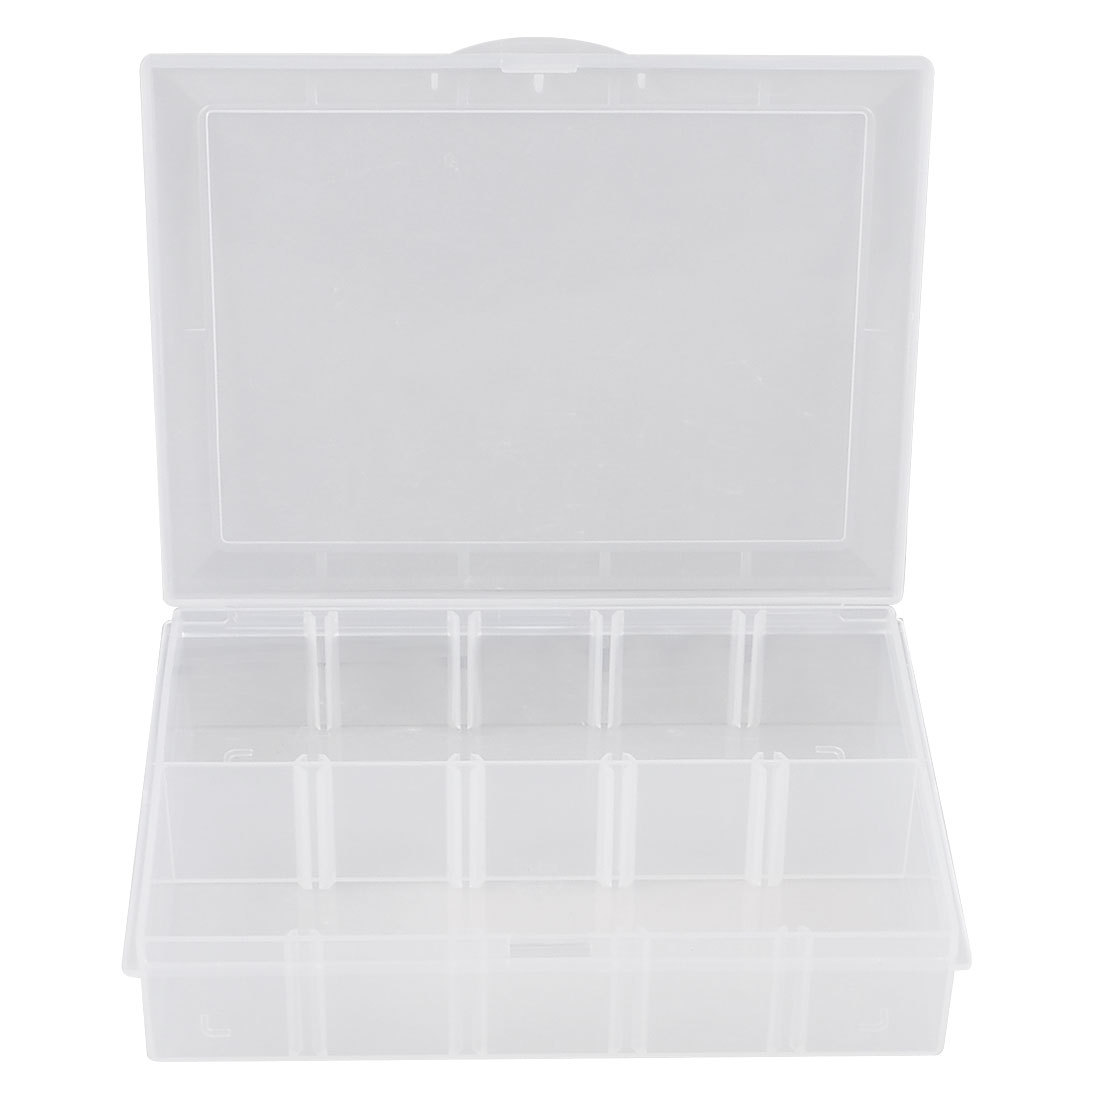 Plastic 10 Compartments Jewelry Electronic Component Storage Clear Box Case